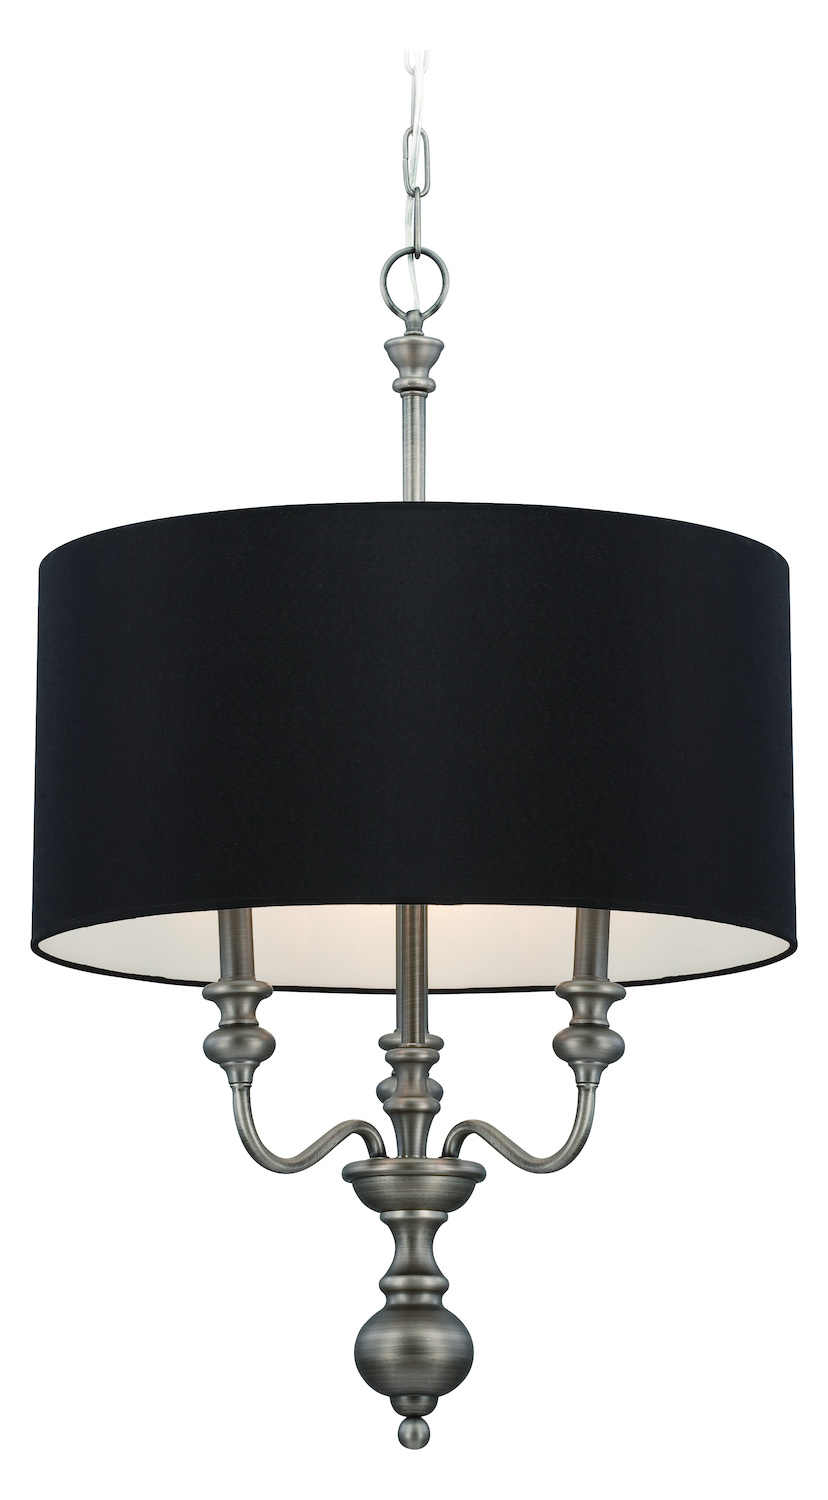 nickel black shade drum shade chandelier from willow park collection